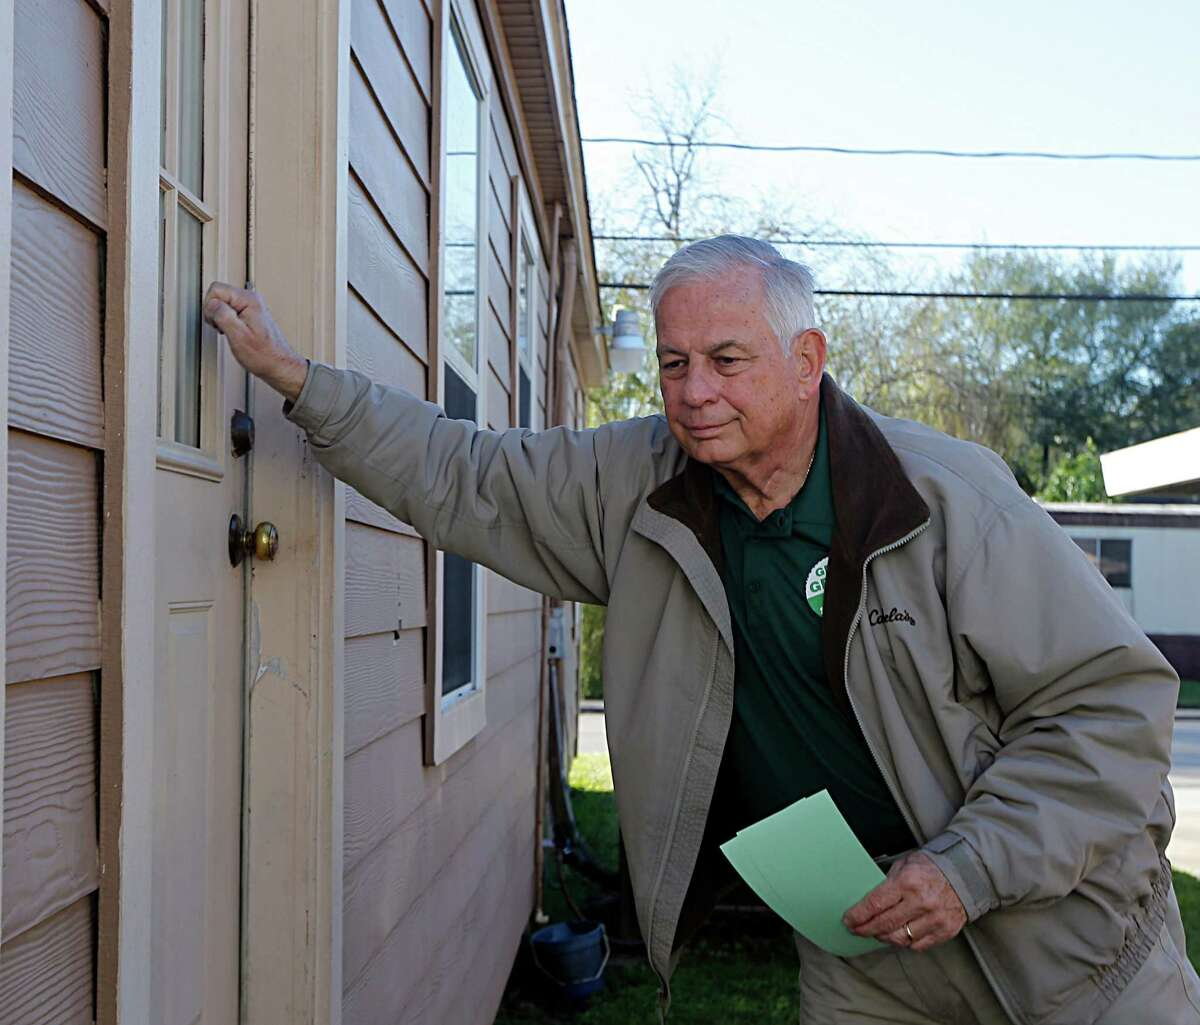 Congressman Gene Green knocks on a door while canvasing voters at their homes Saturday, Jan. 9, 2016, in Pasadena. ( James Nielsen / Houston Chronicle )